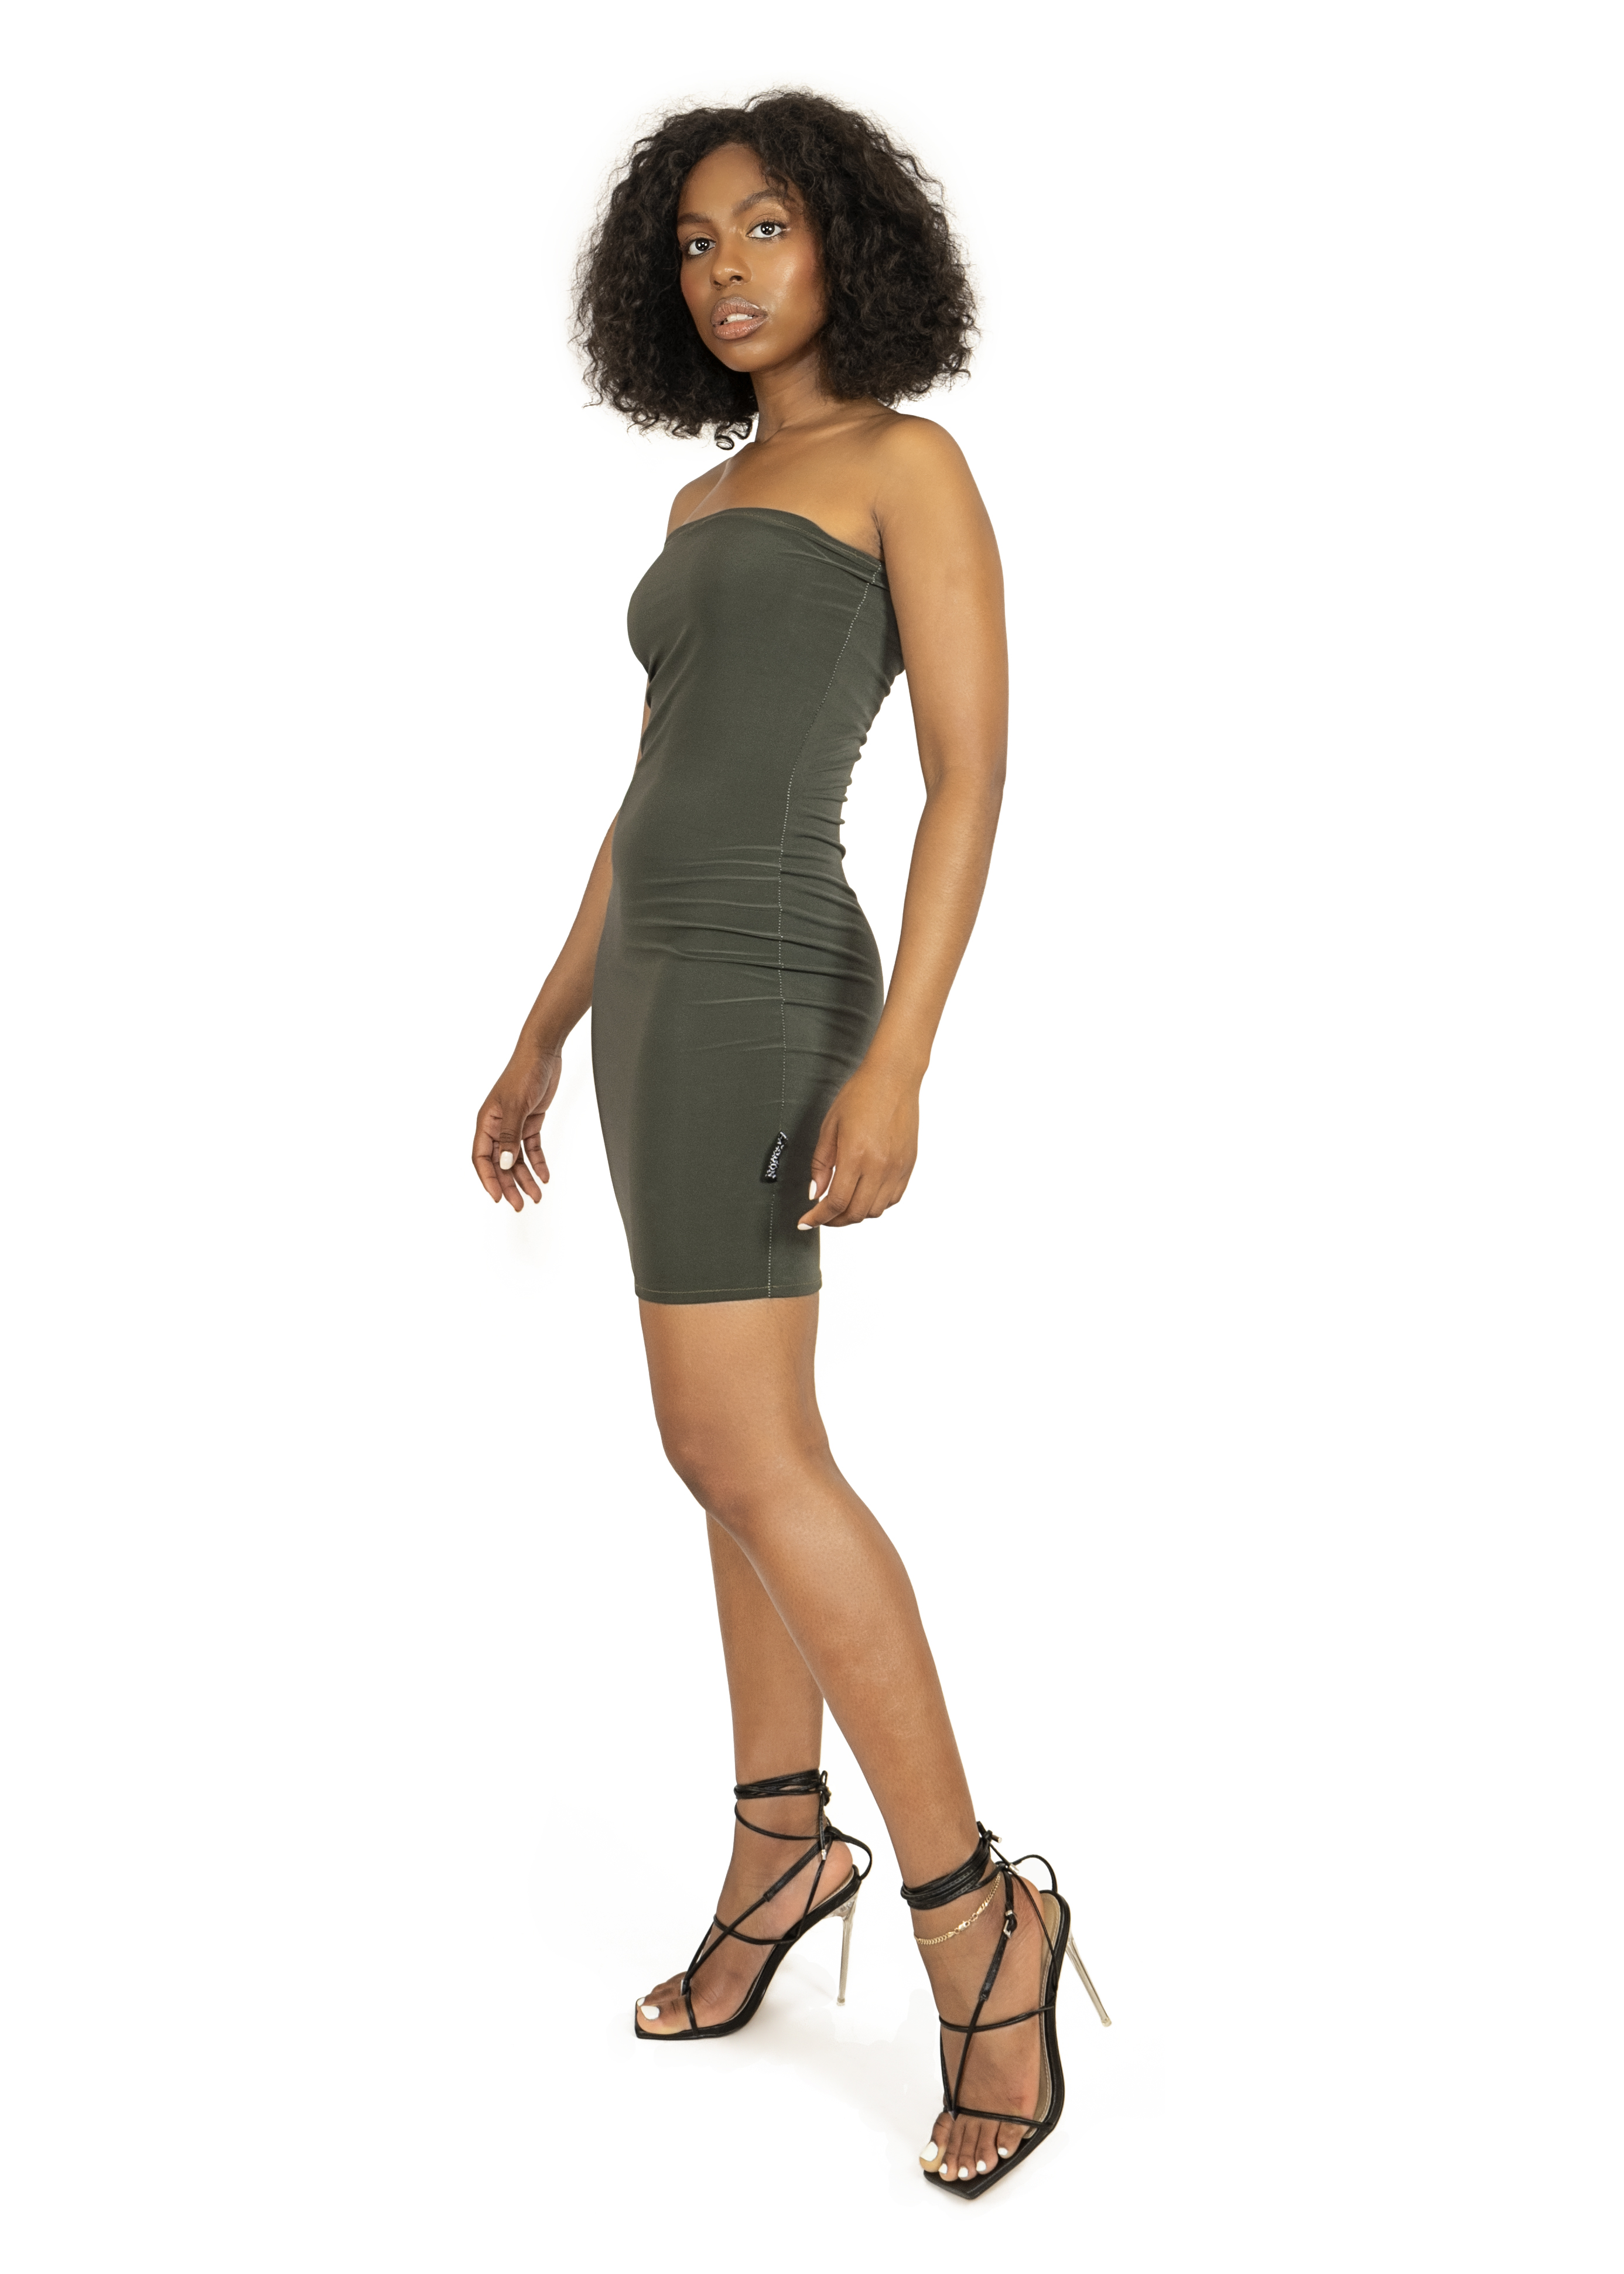 Dress_cloths_garments_product_photos_with_model_17